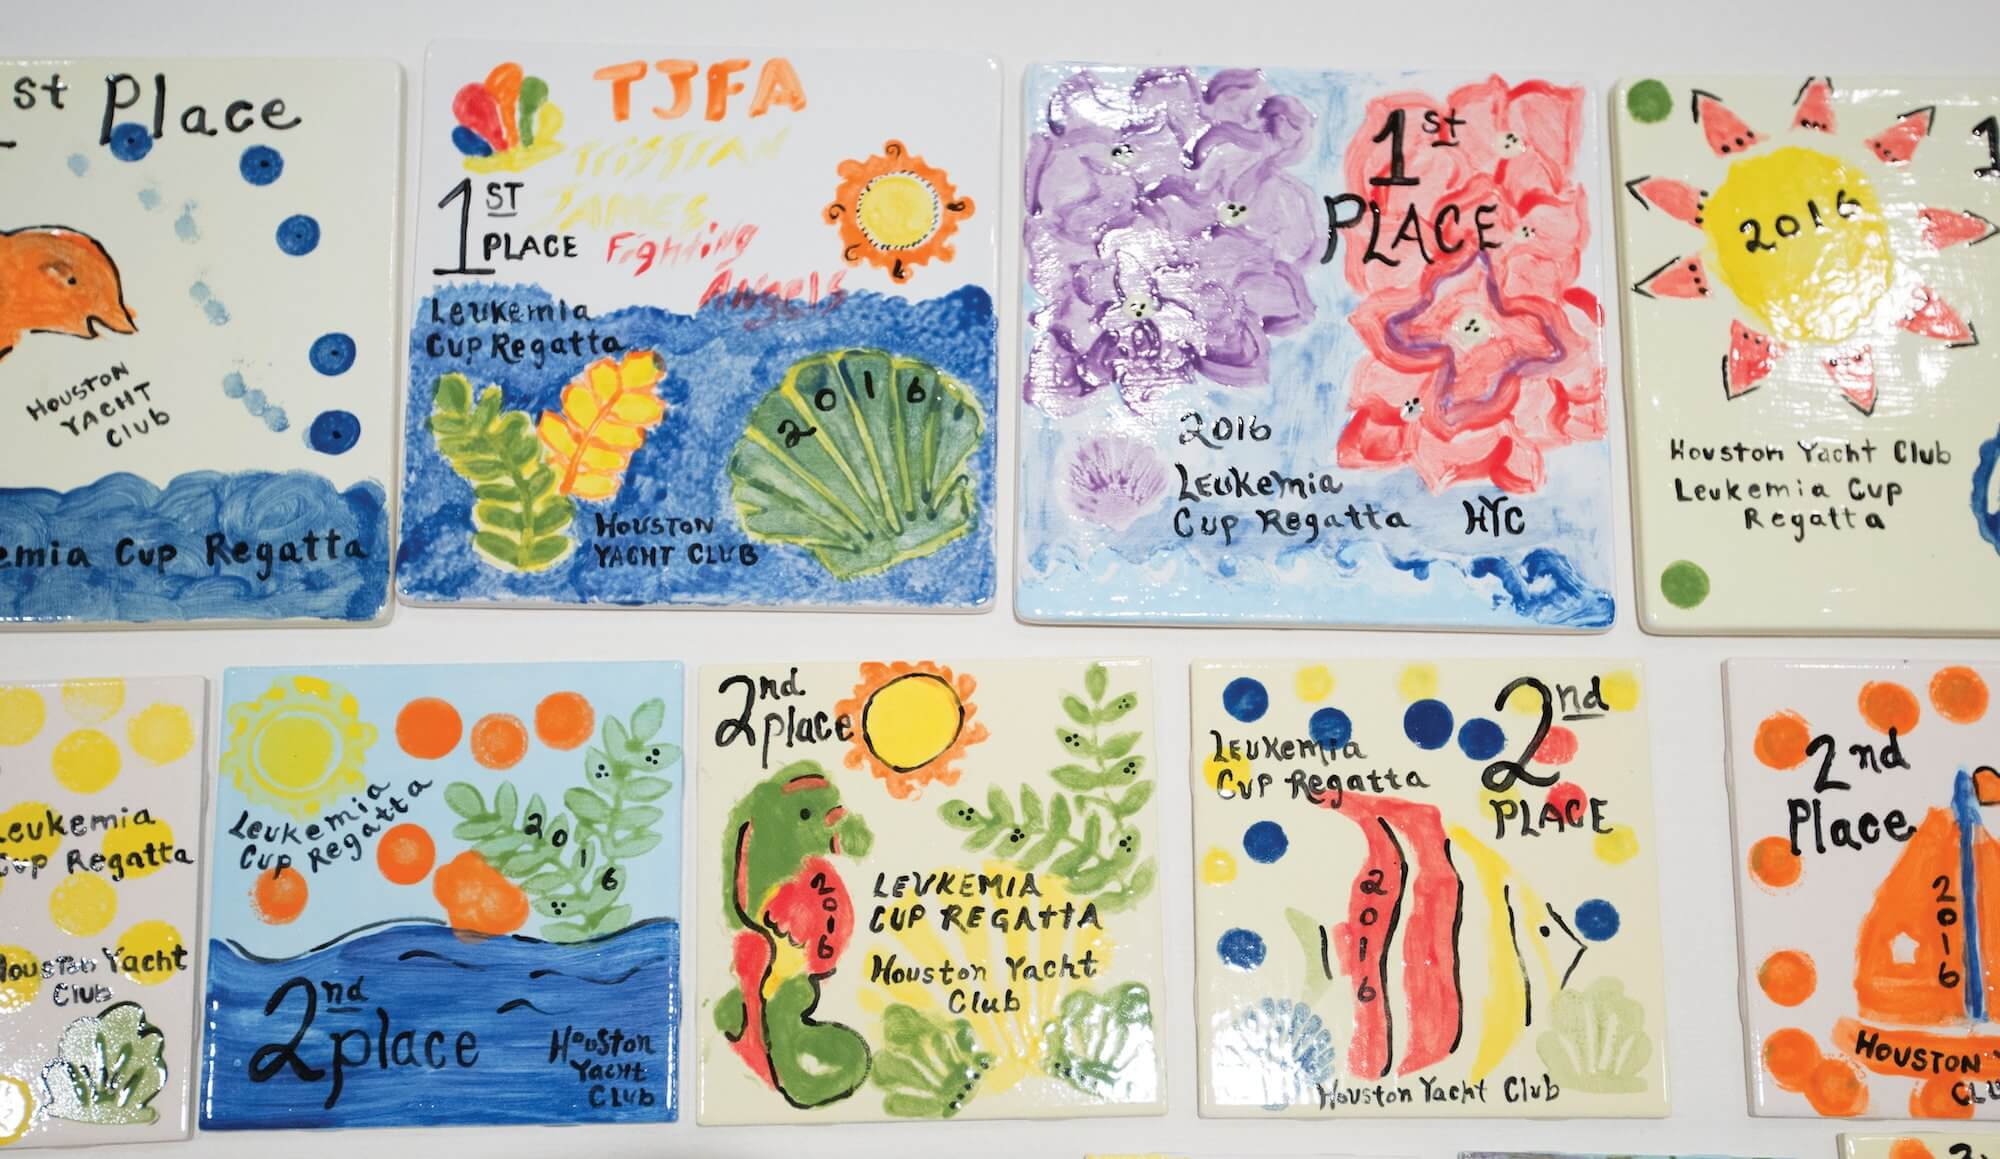 Tiles painted by patients at Texas Children's Hospital are given as trophies to individuals for their fundraising efforts.